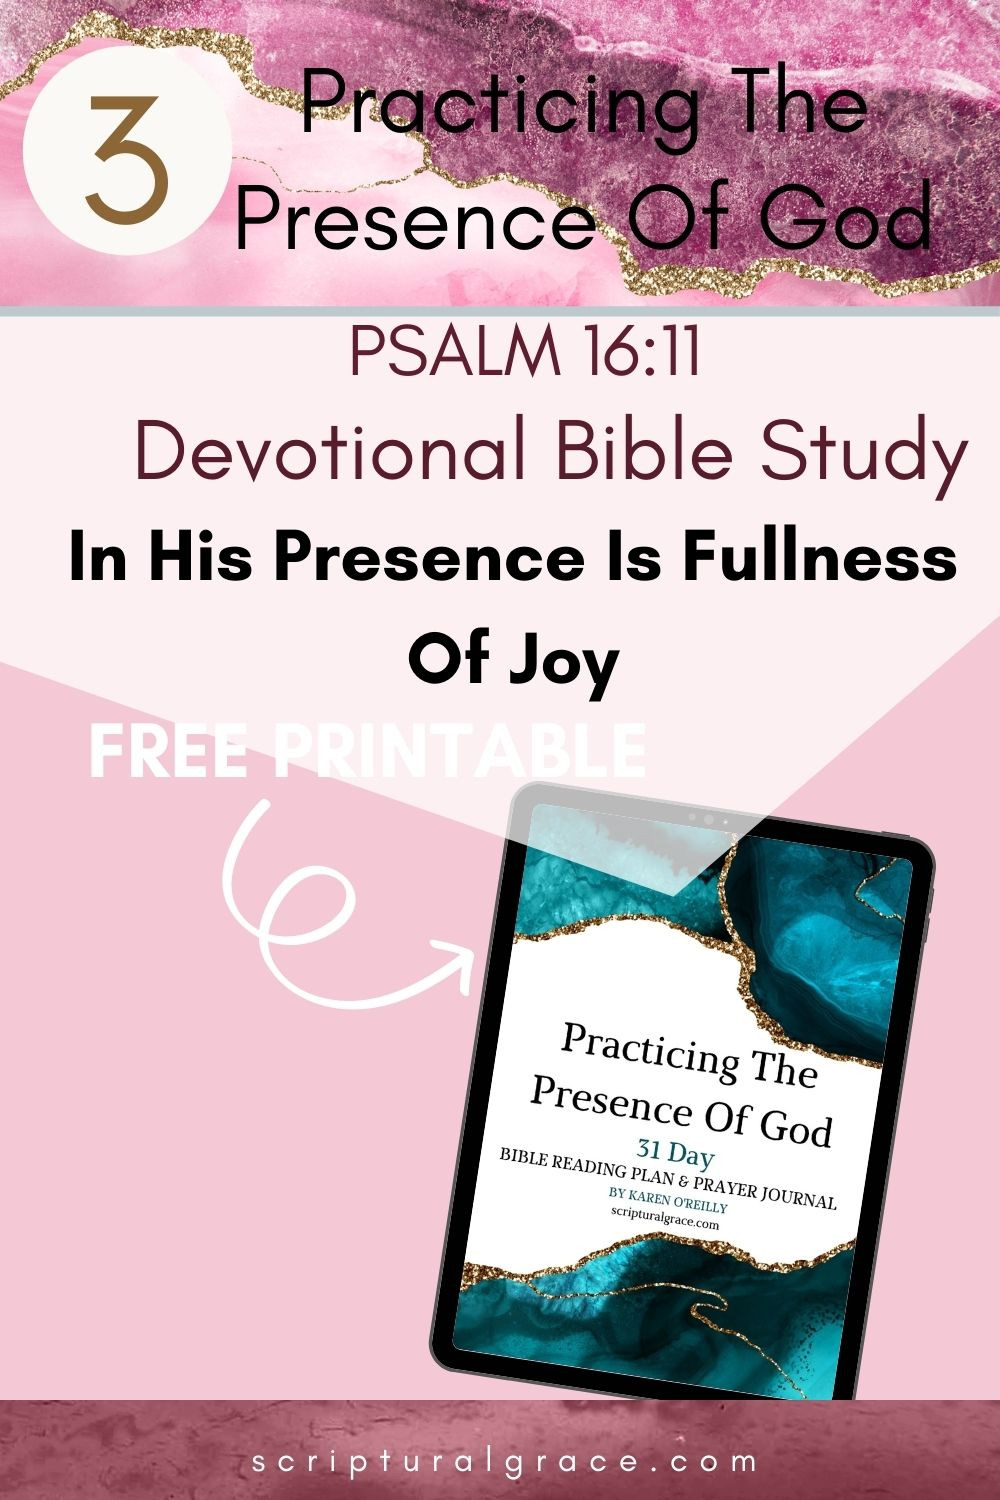 In His Presence Is Fullness Of Joy Psalm 16 11 devotional bible study and free printable